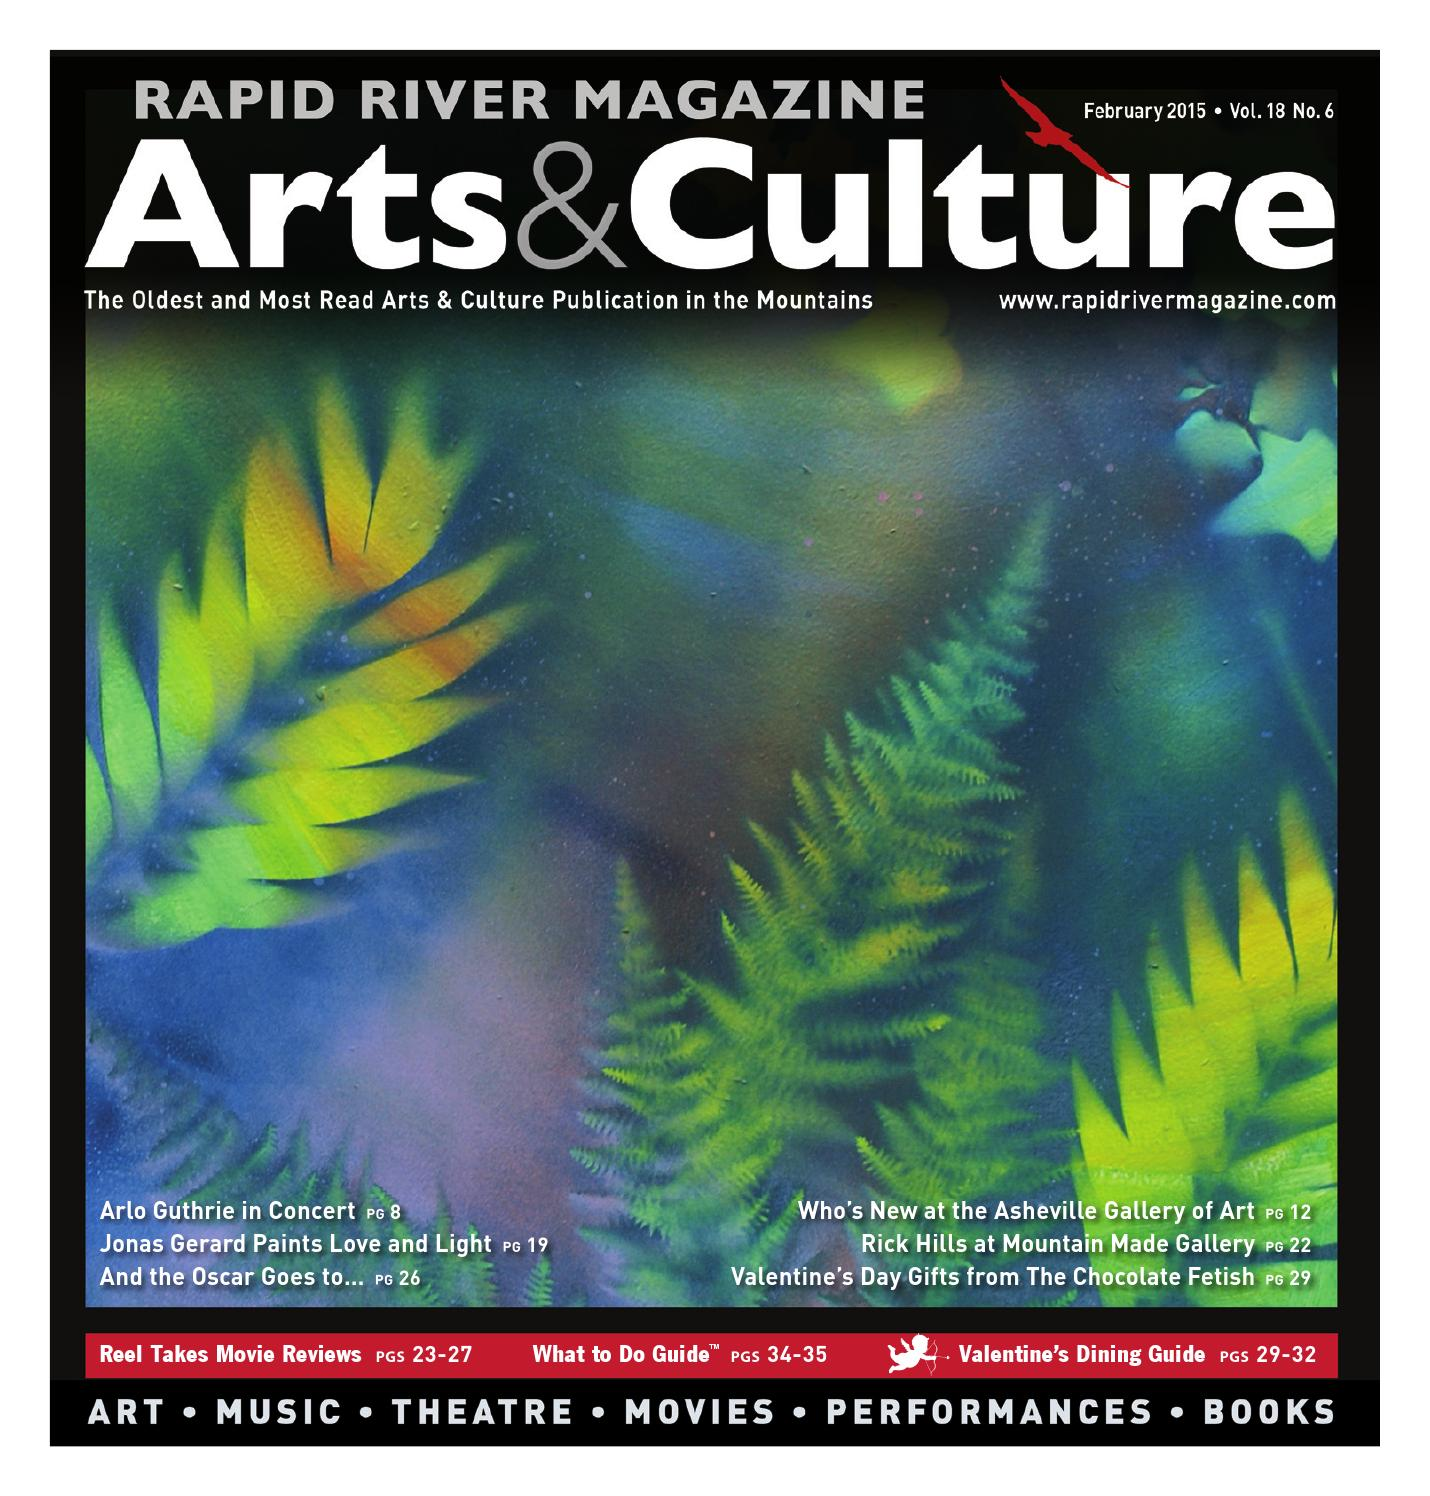 February 2015 Rapid River Magazine by Rapid River Magazine